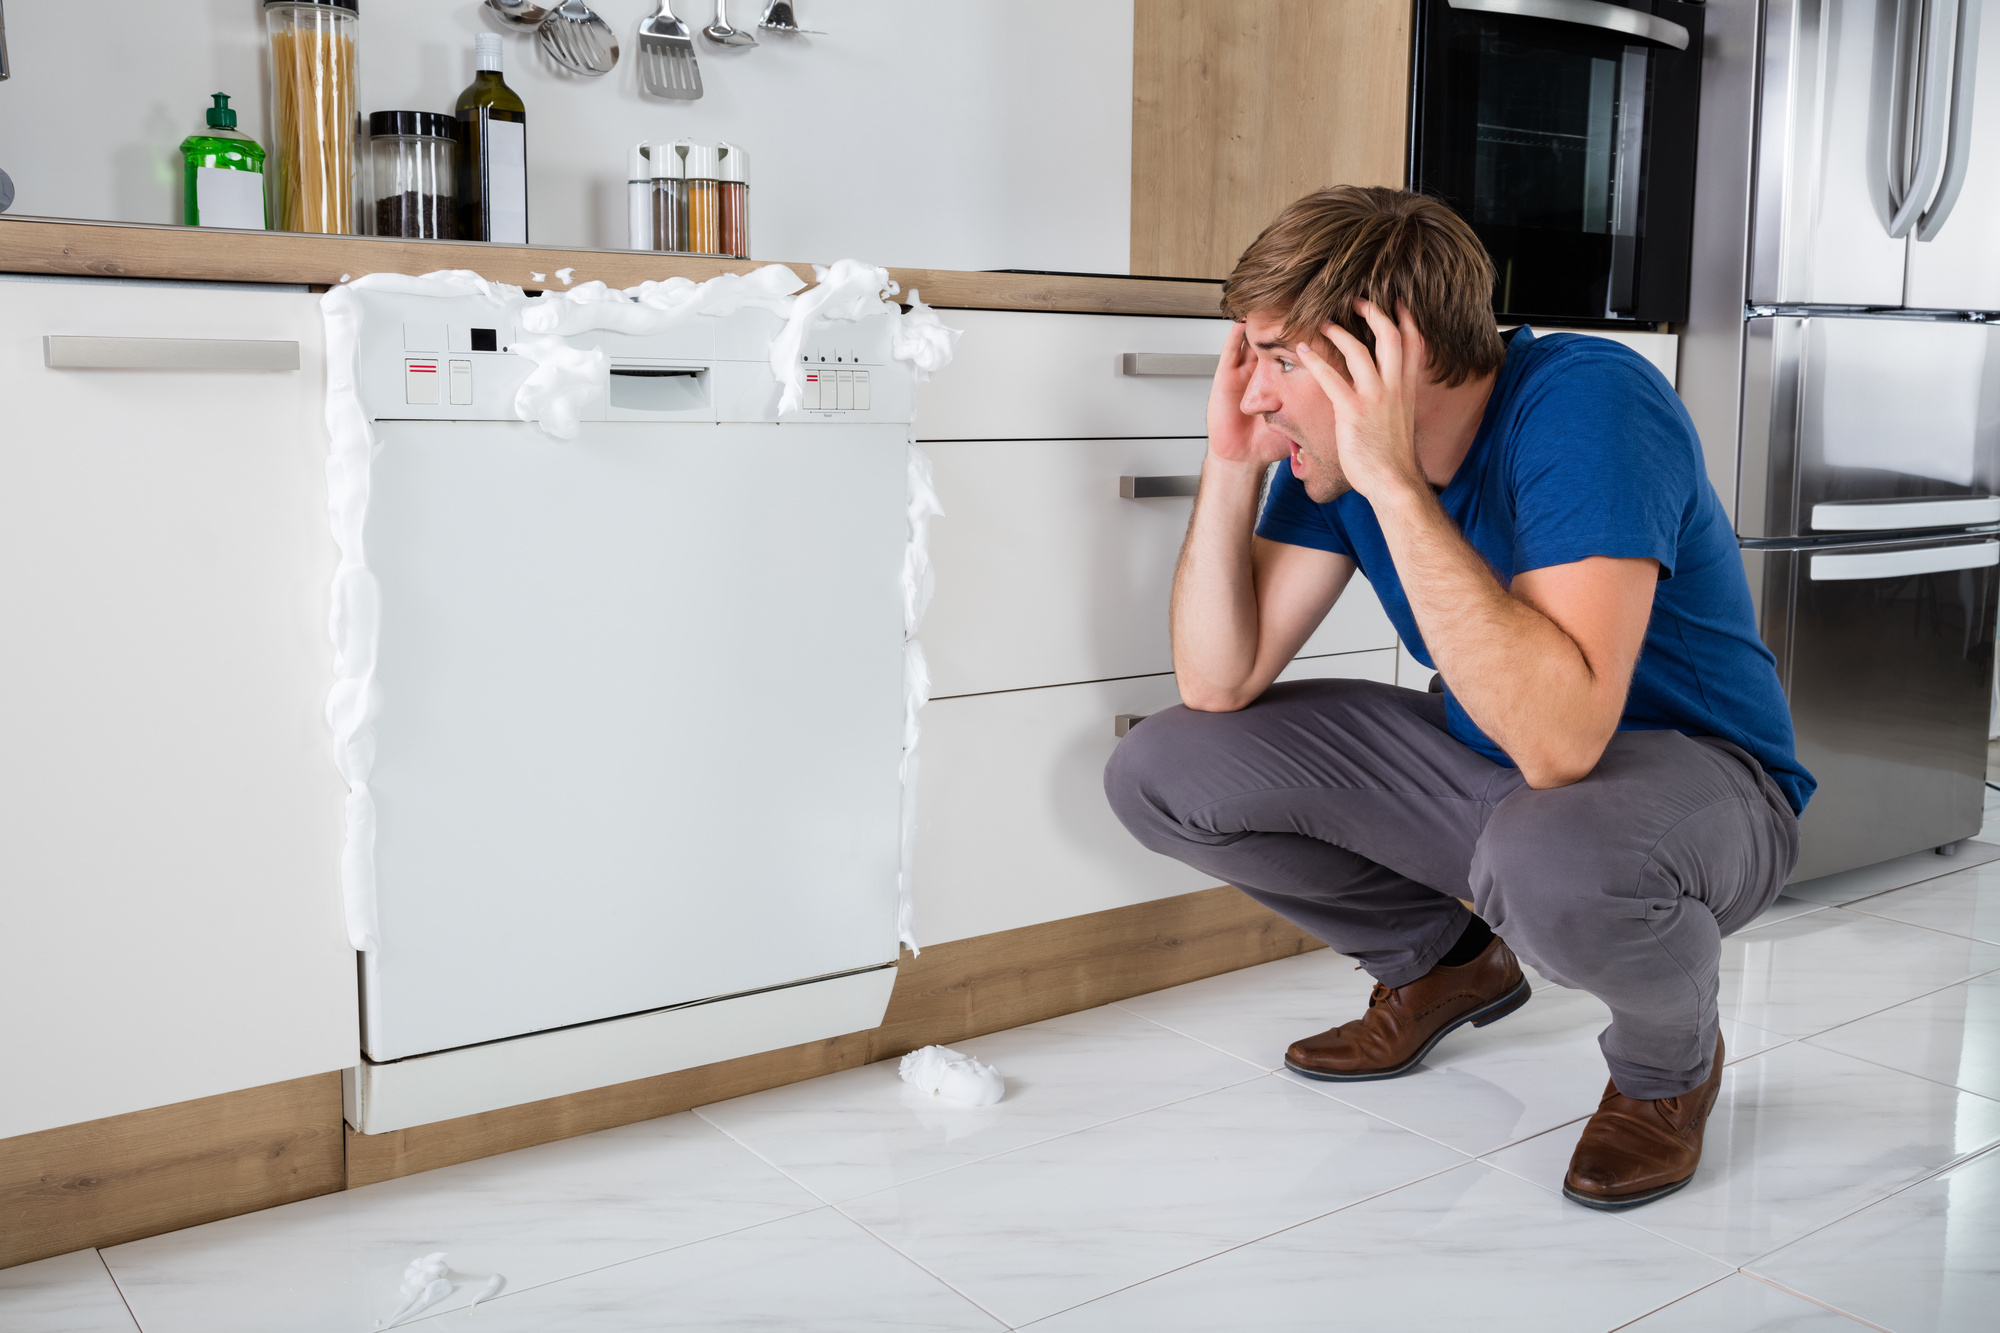 5 Signs You Have a Broken Dishwasher (and How to Fix it)